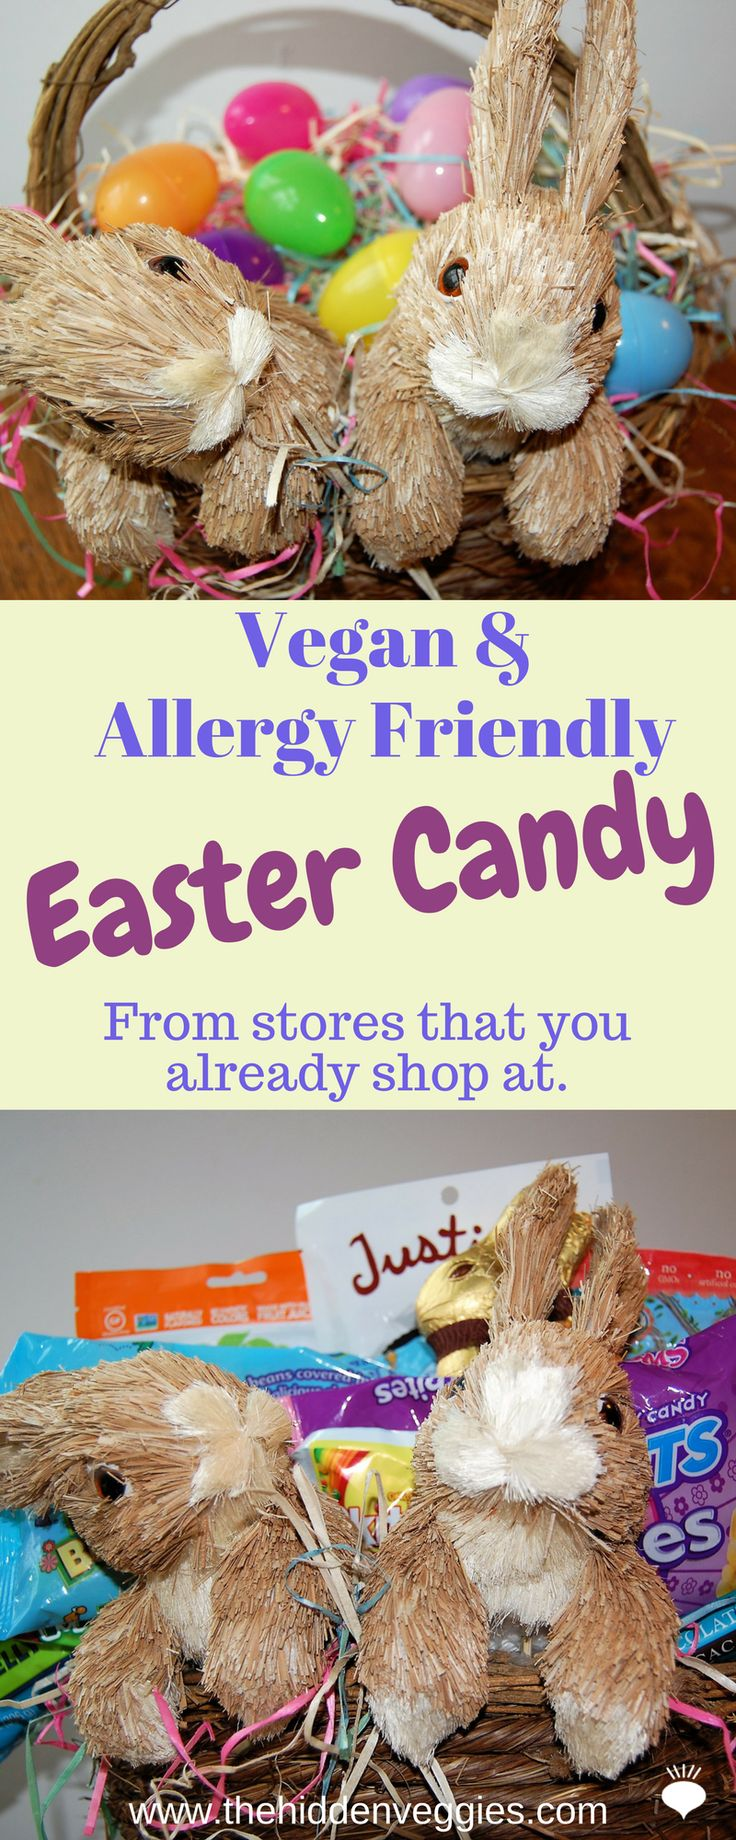 "Vegan and Allergy Friendly Easter Candy from ""Normal"" Stores like Marshall's, TJ Max, Home Goods, Trader Joes, Target and regular grocery stores! thehiddenveggies.com"